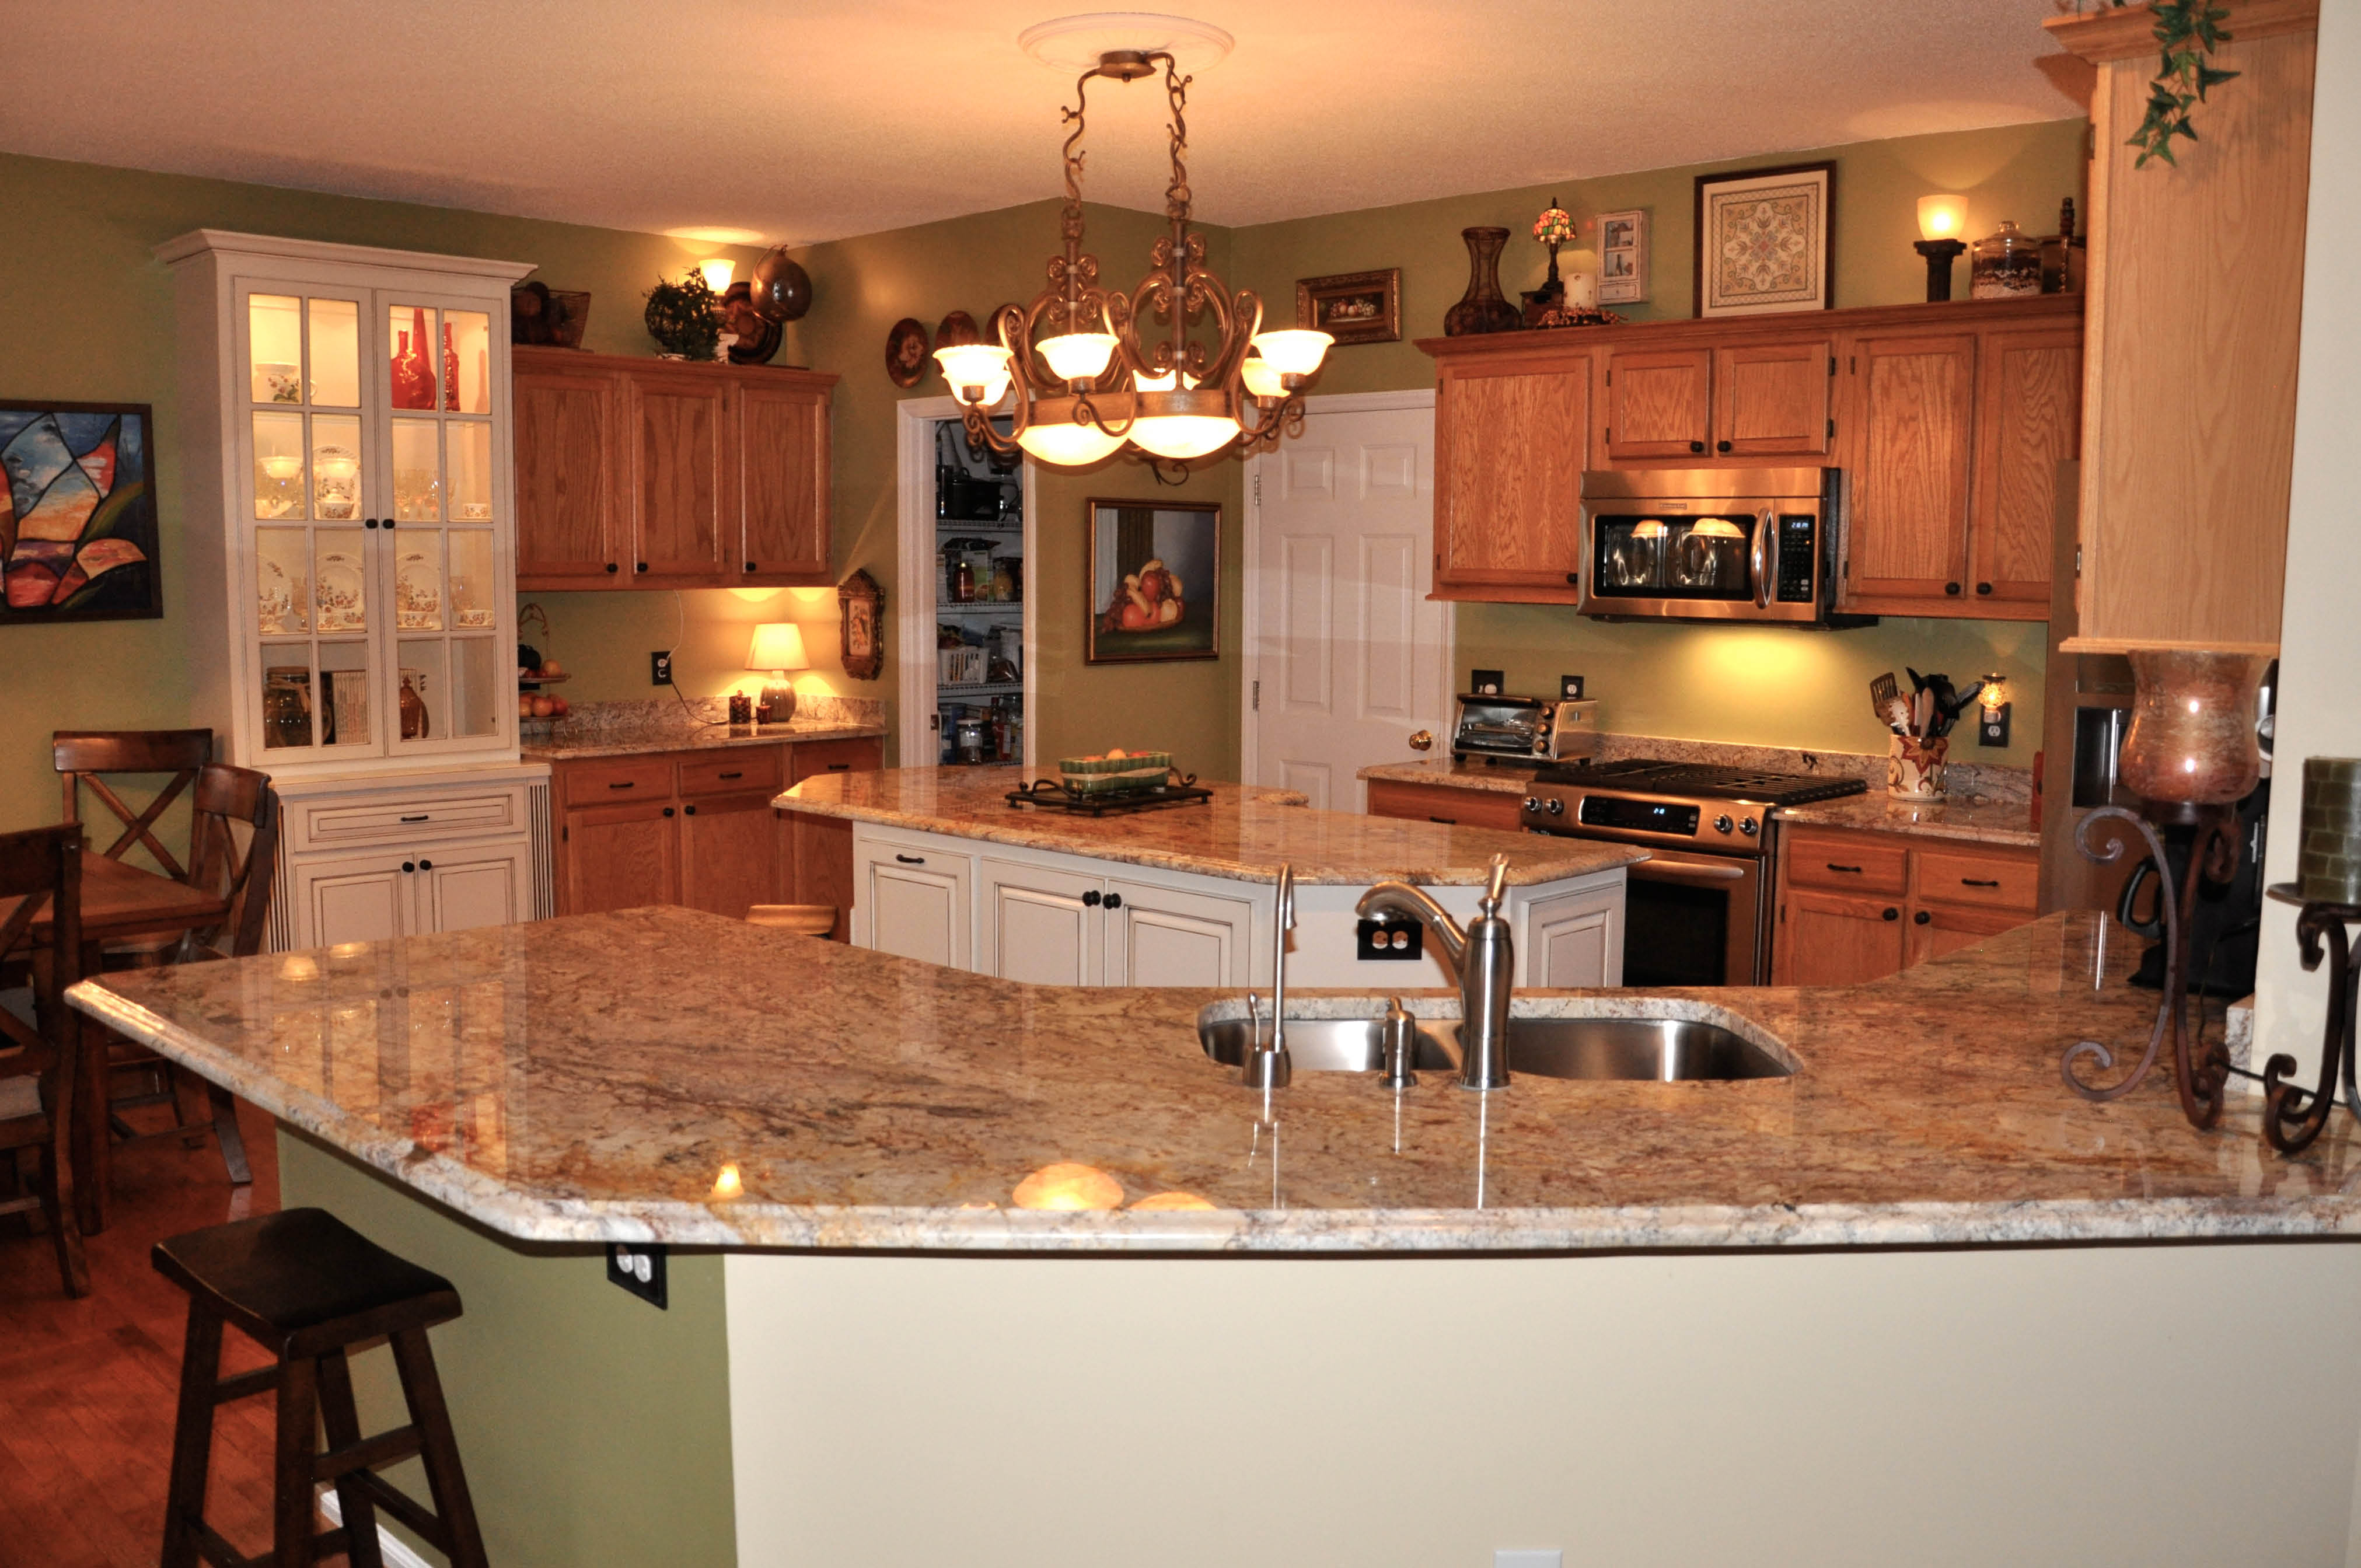 get marble countertops for a kitchen remodel in Chapel Hill